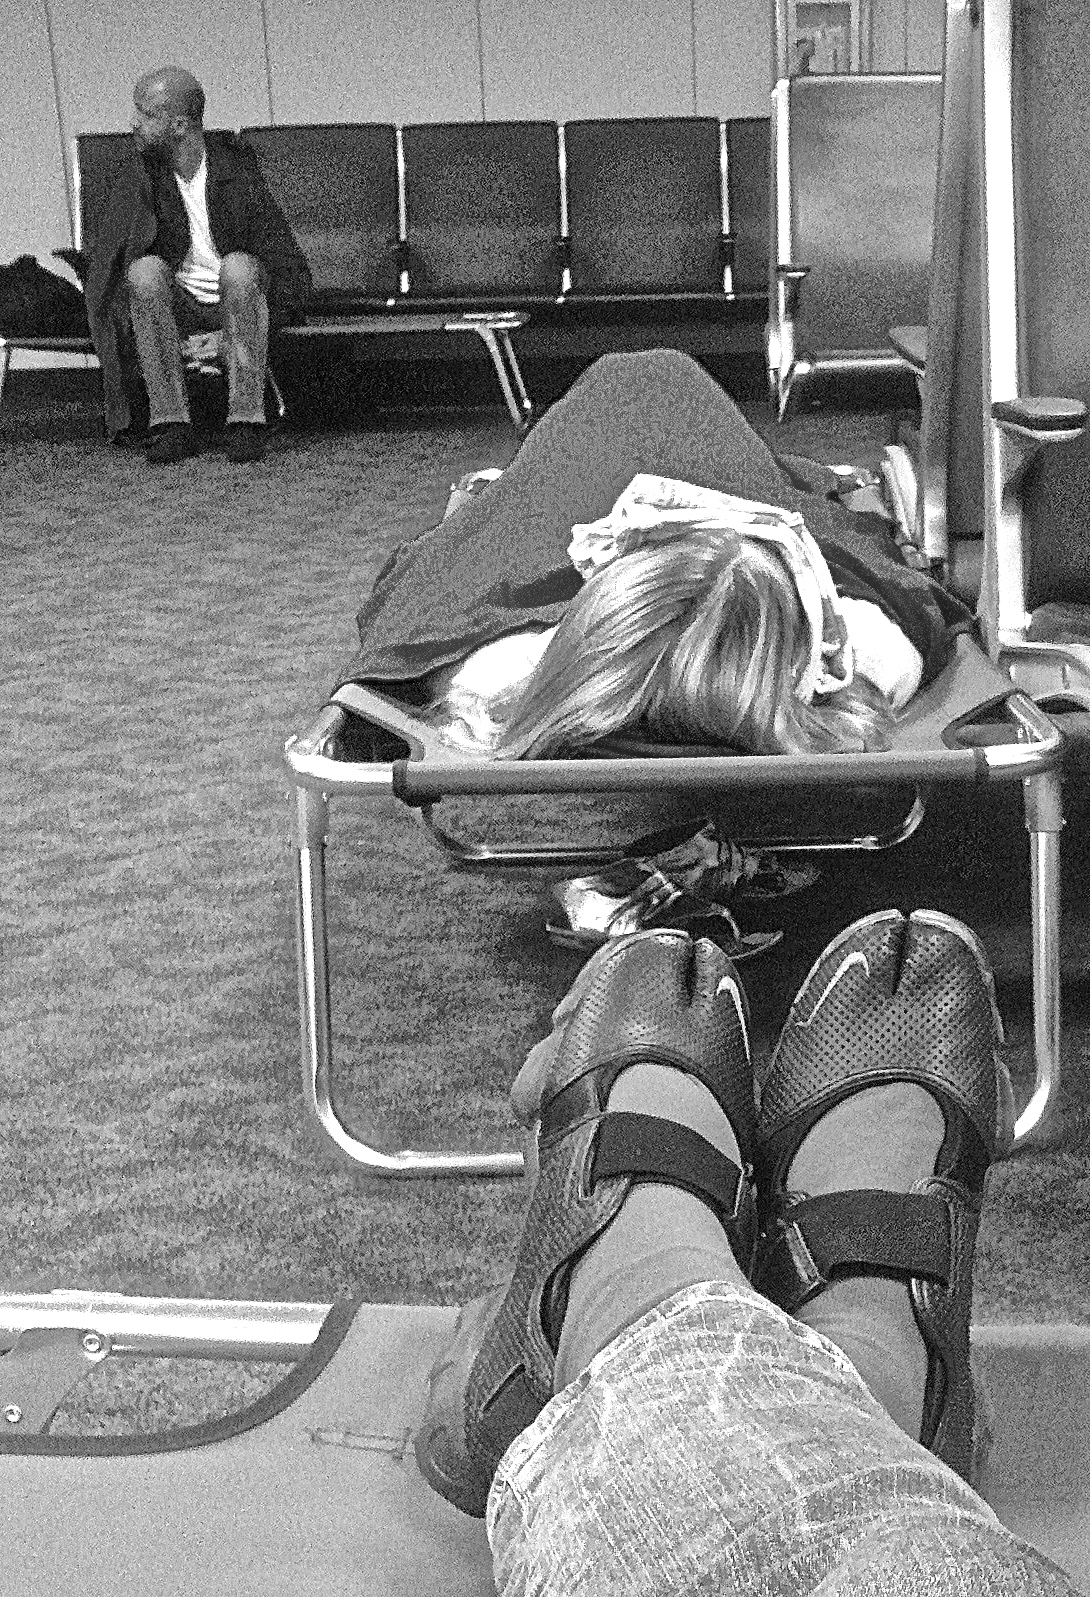 Overnight in the Dallas/Fort Worth Airport.